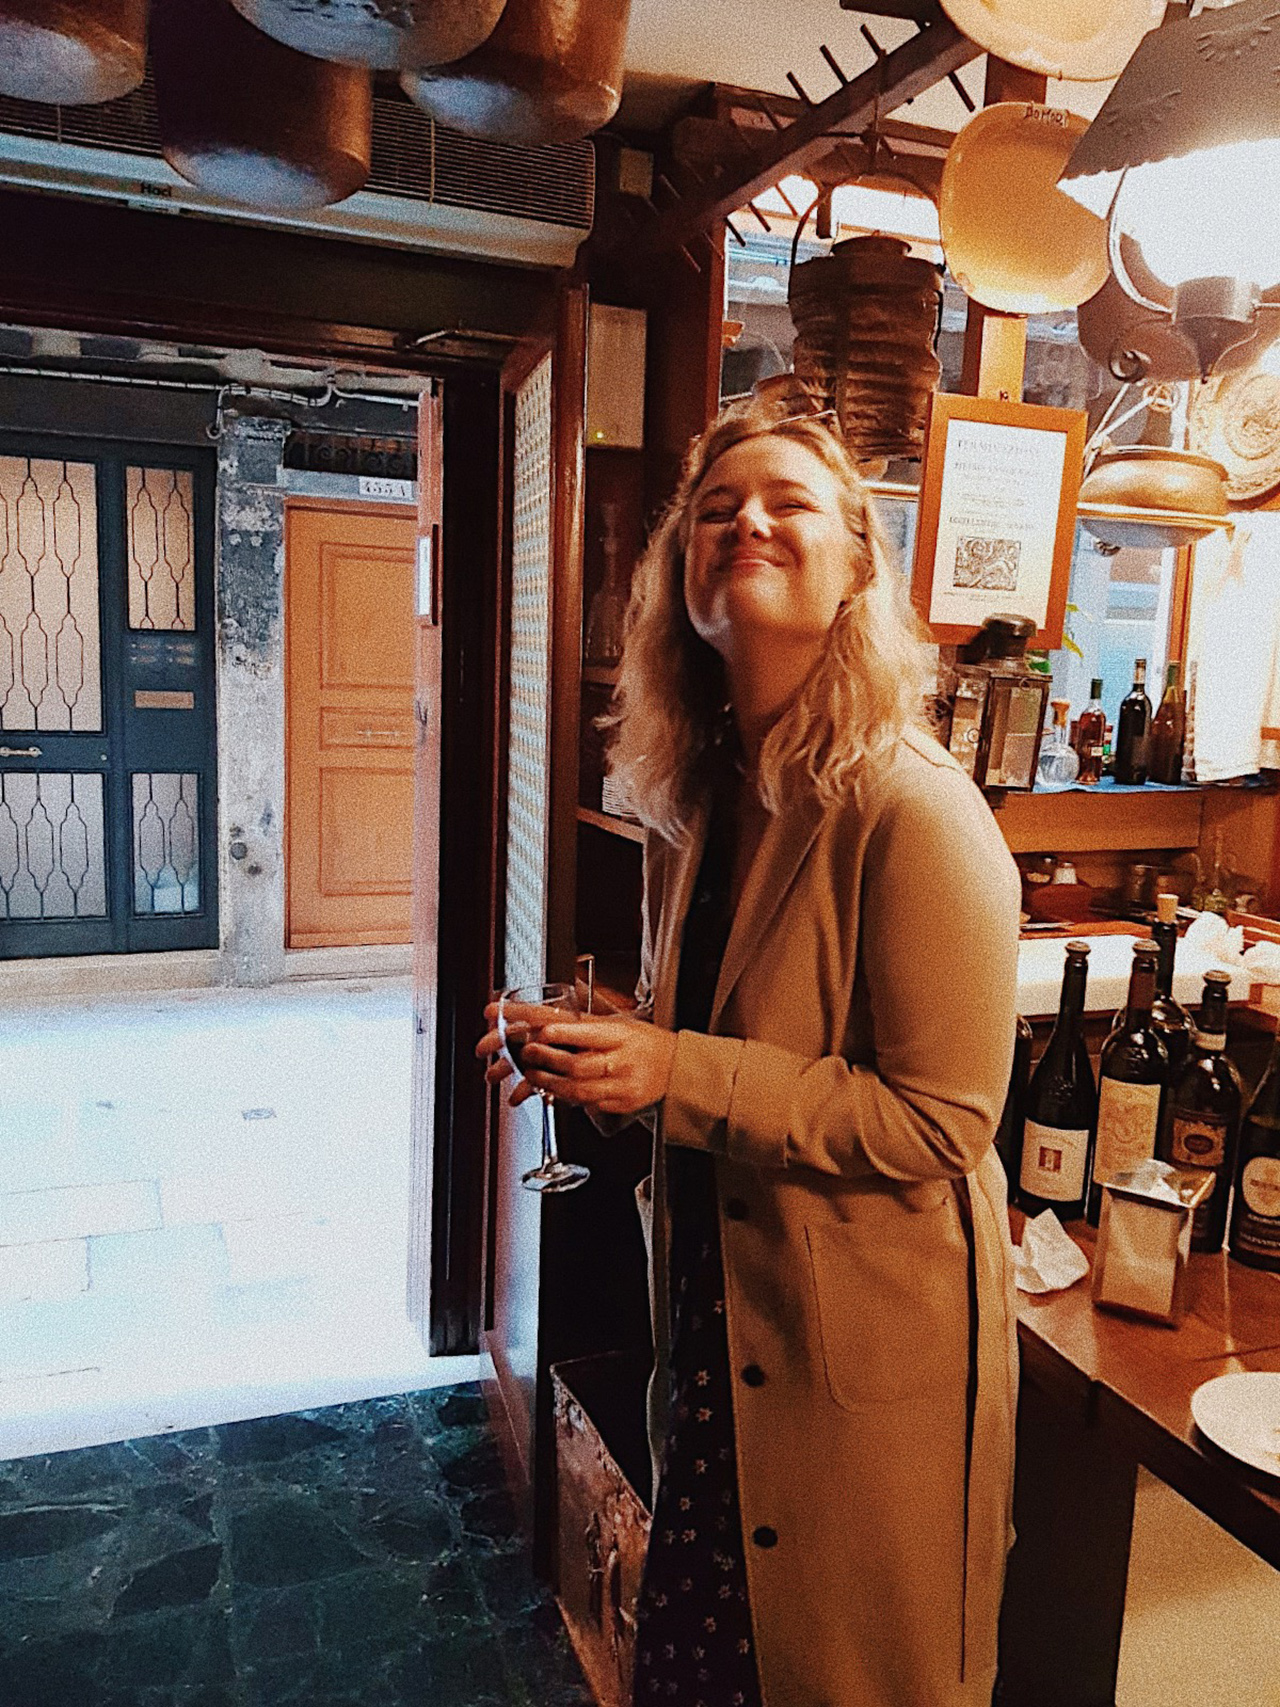 Blogger Sarah Witpeerd at wine bar in Venice Italy